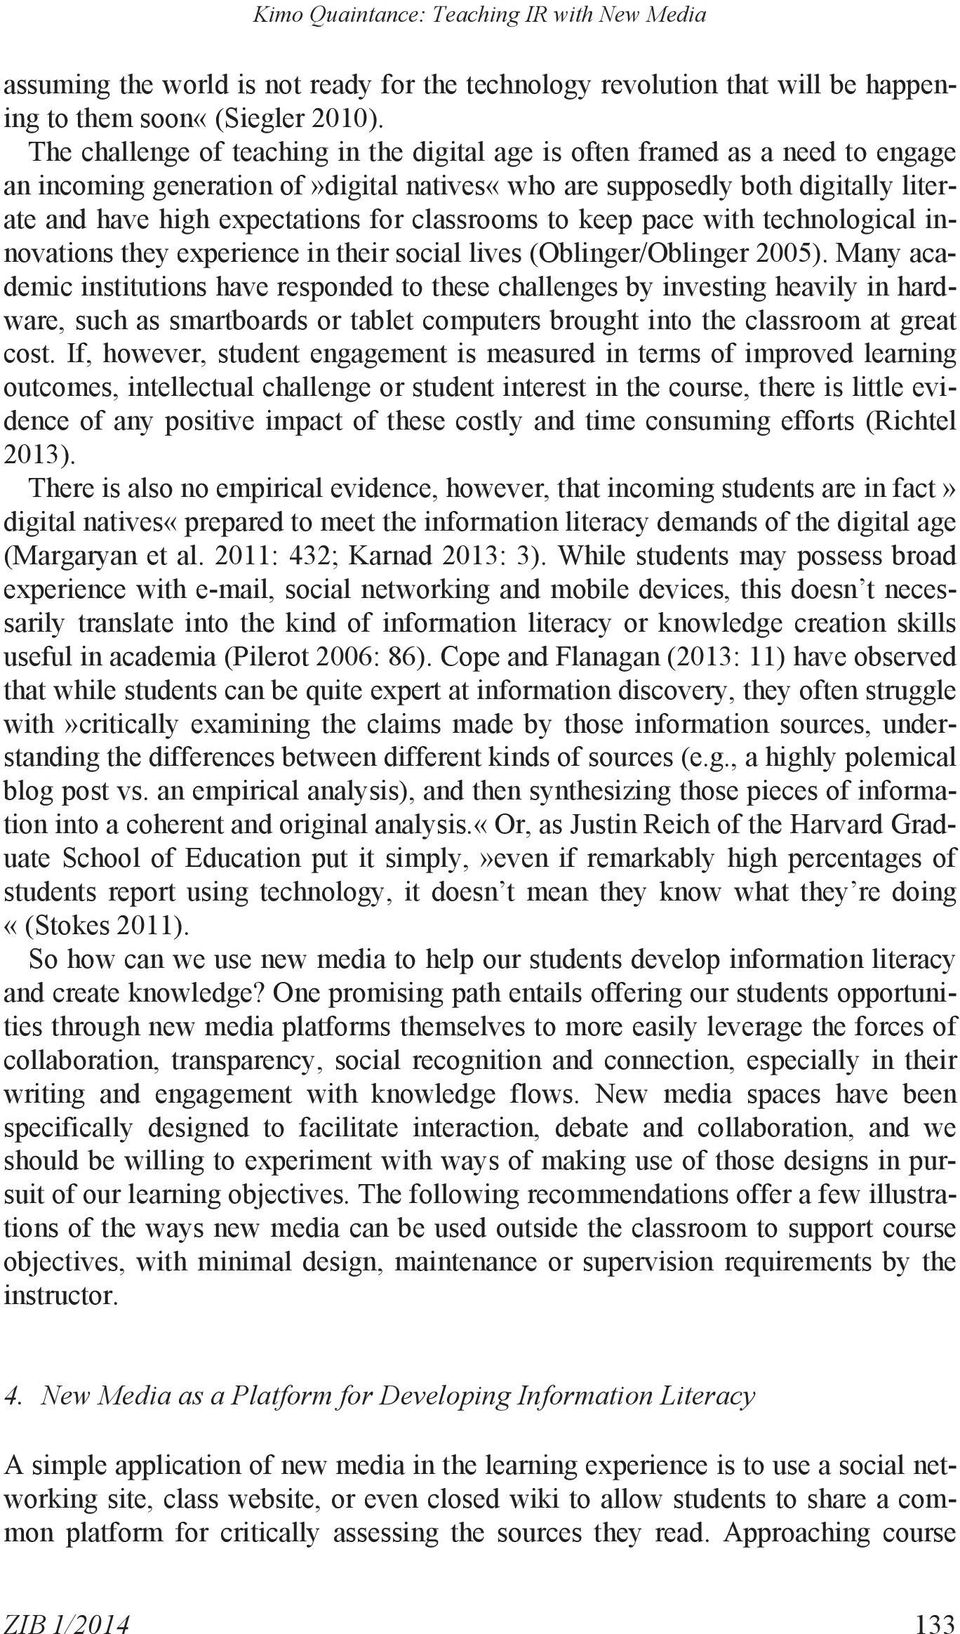 classrooms to keep pace with technological innovations they experience in their social lives (Oblinger/Oblinger 2005).